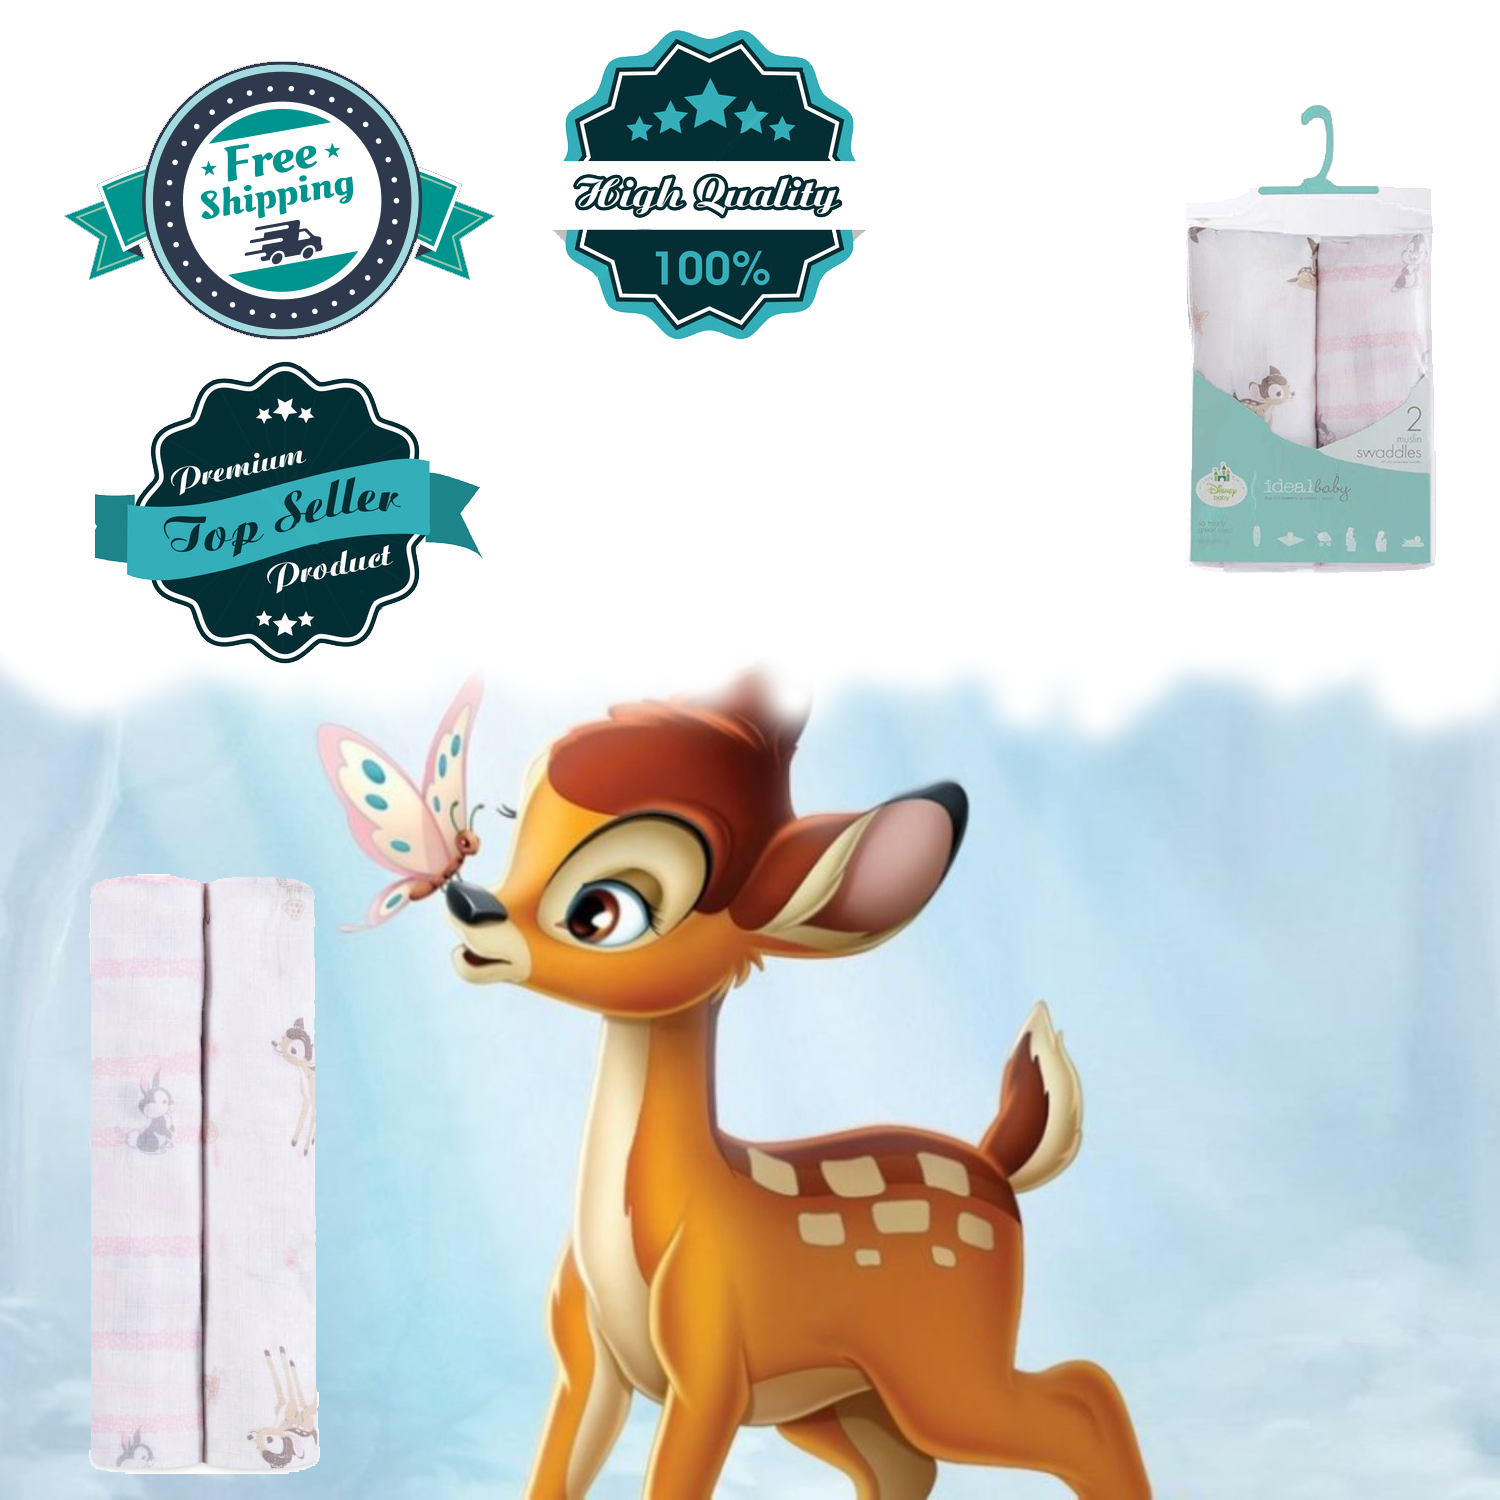 Ideal Baby by the Makers of Aden+Anais Swaddle Muslin Disney